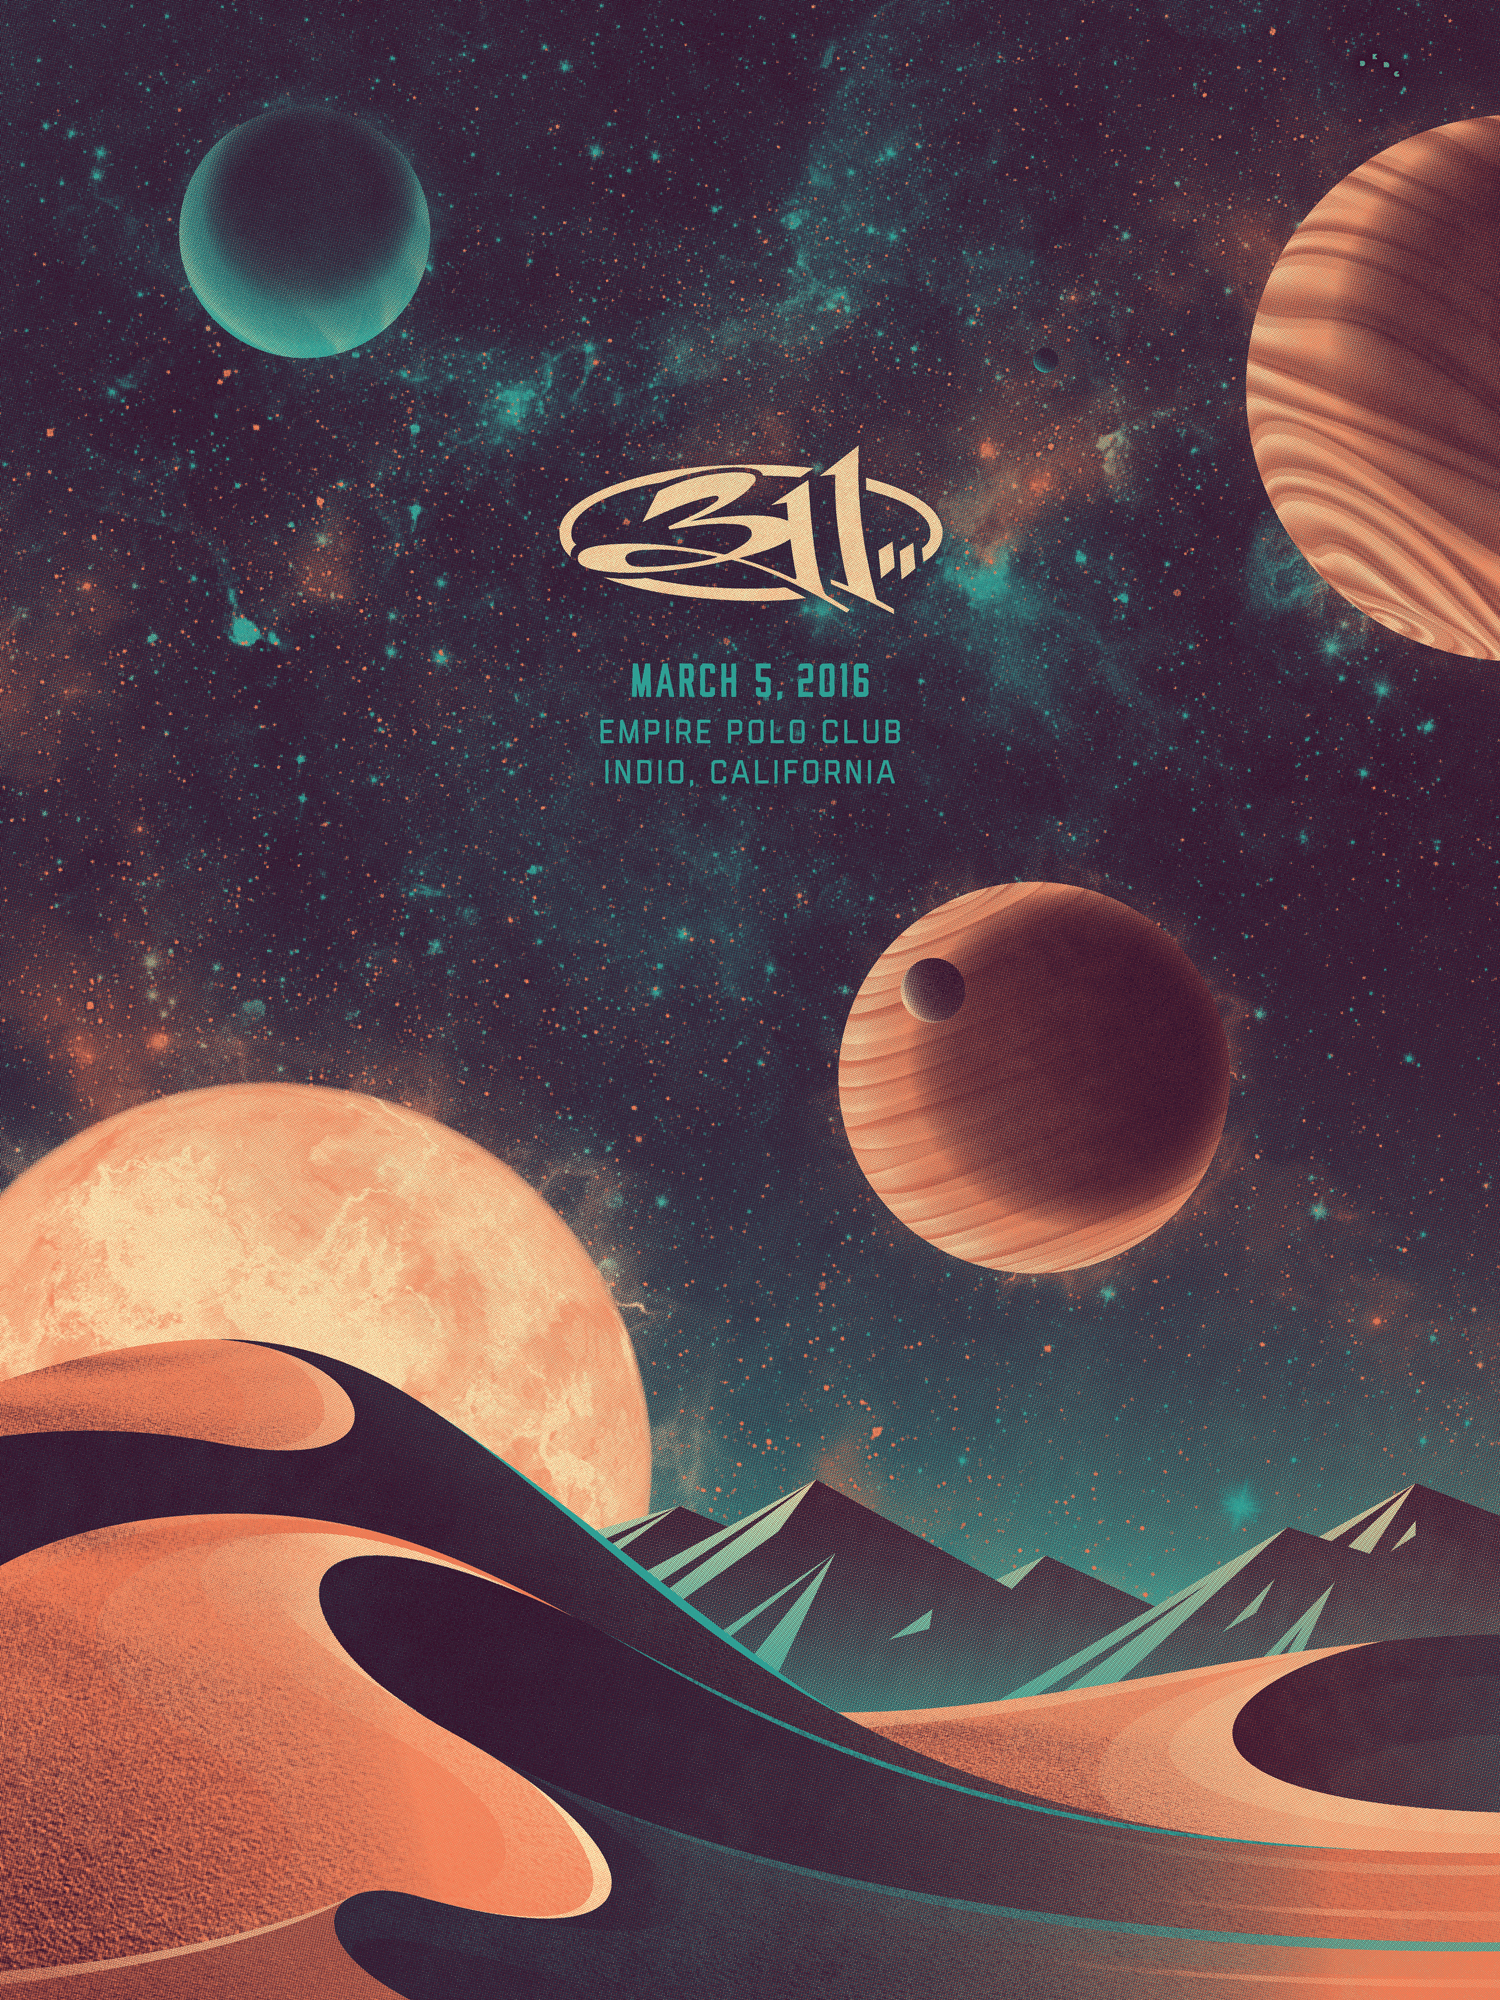 311 Poster (March 5, 2016)